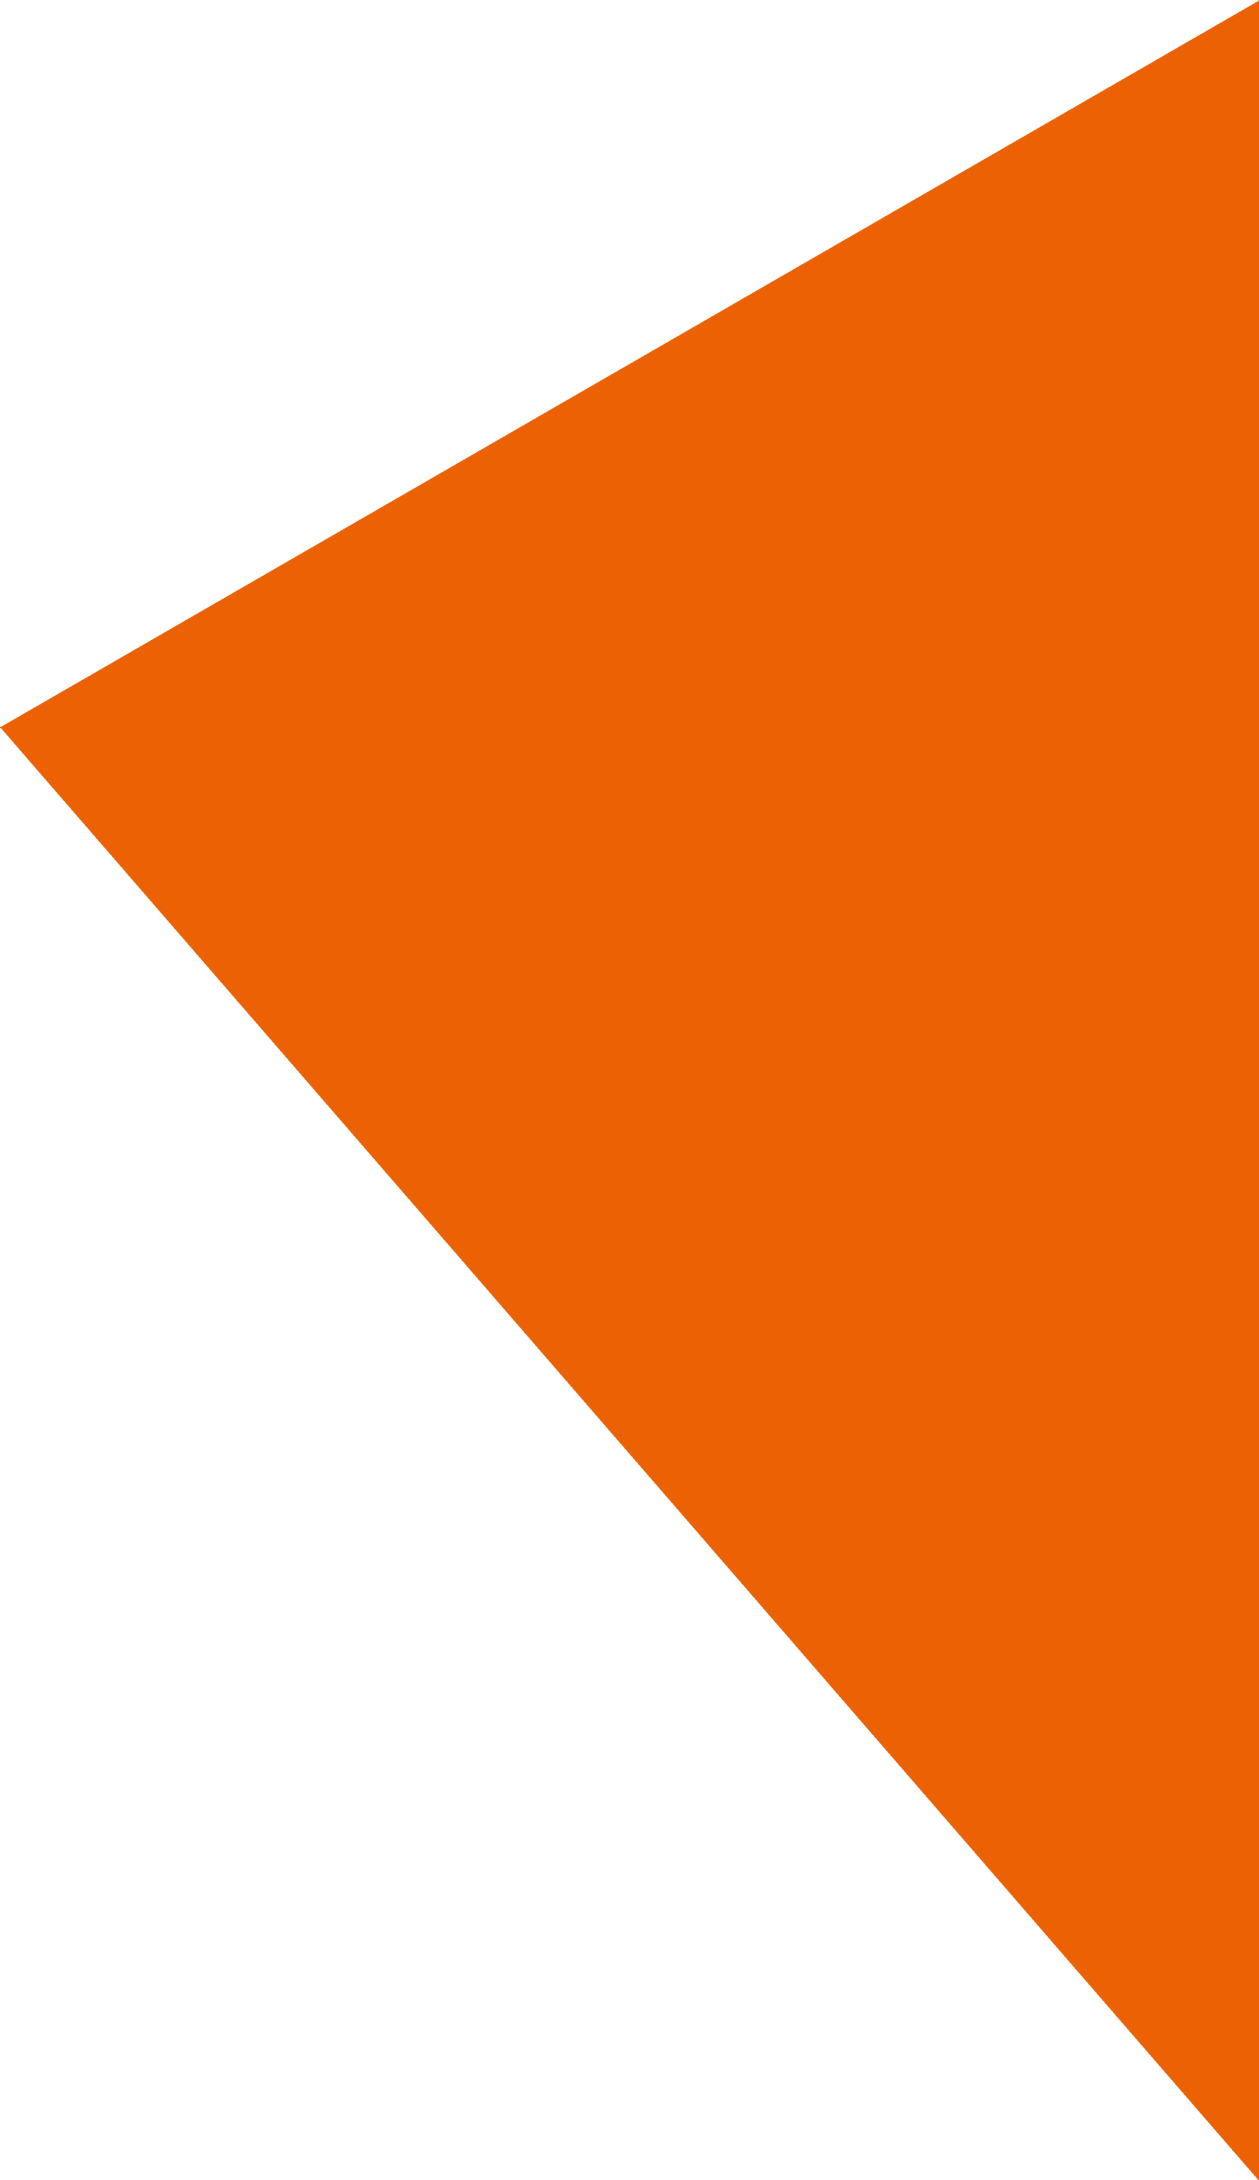 Hintergrund Element Orange